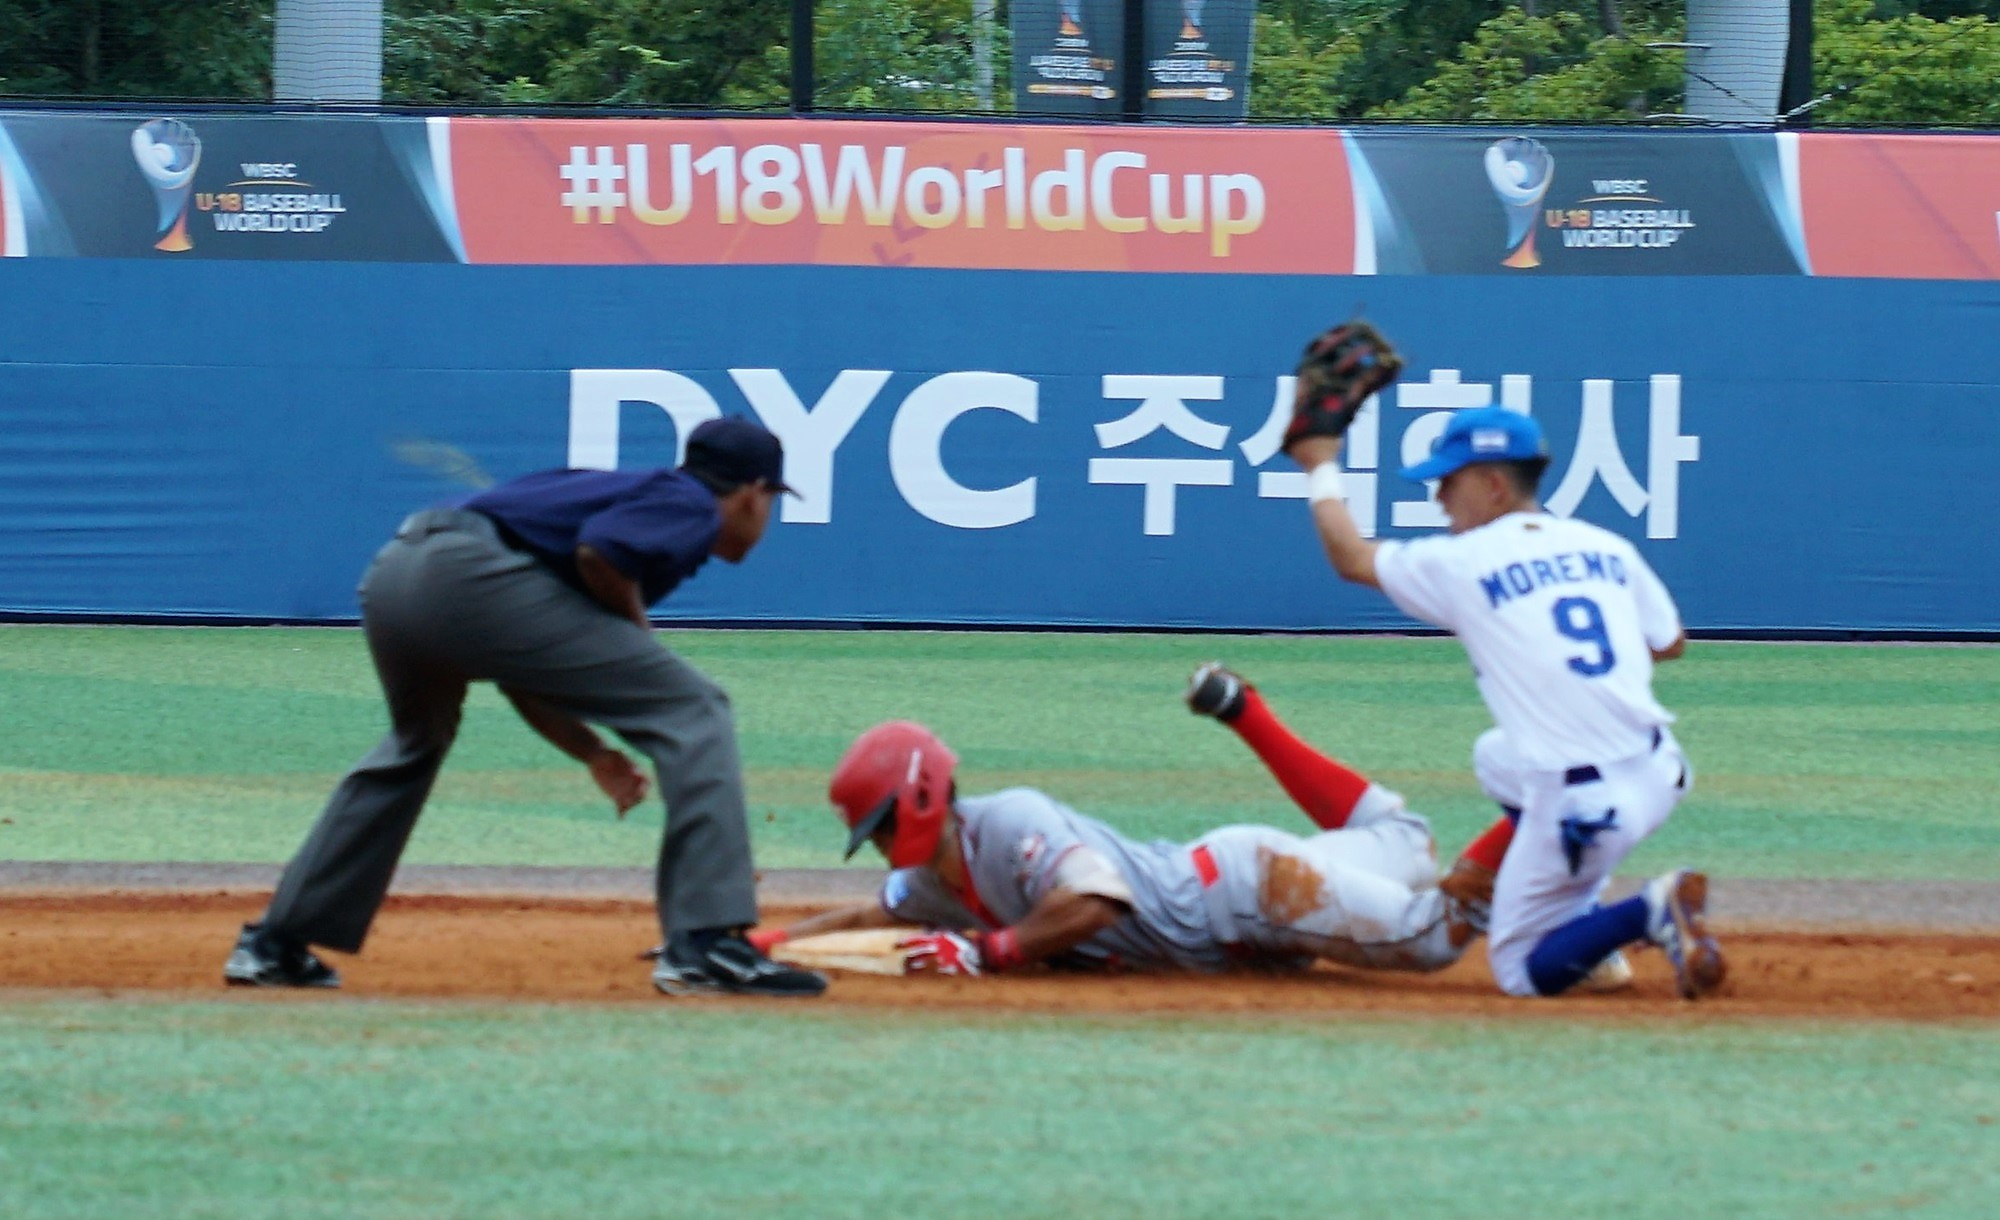 Nicaragua shortstop Christian Moreno tries to get a tag out at second